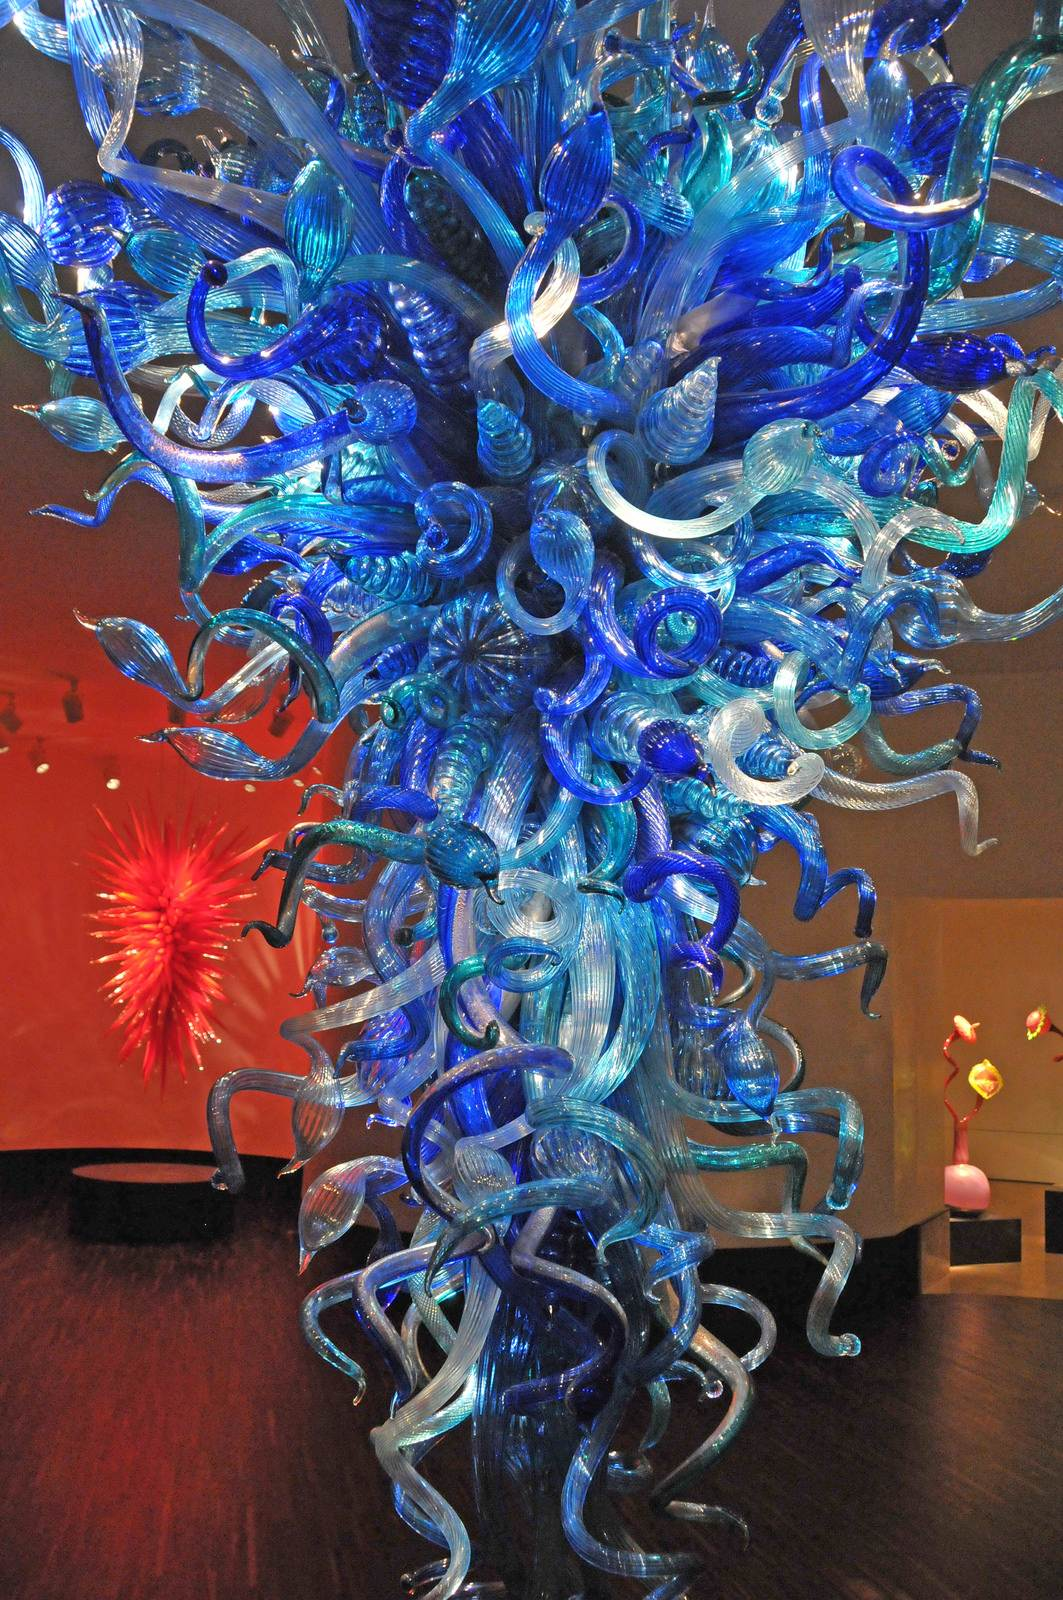 chihuly8 Chihuly Collection in St. Petersburg